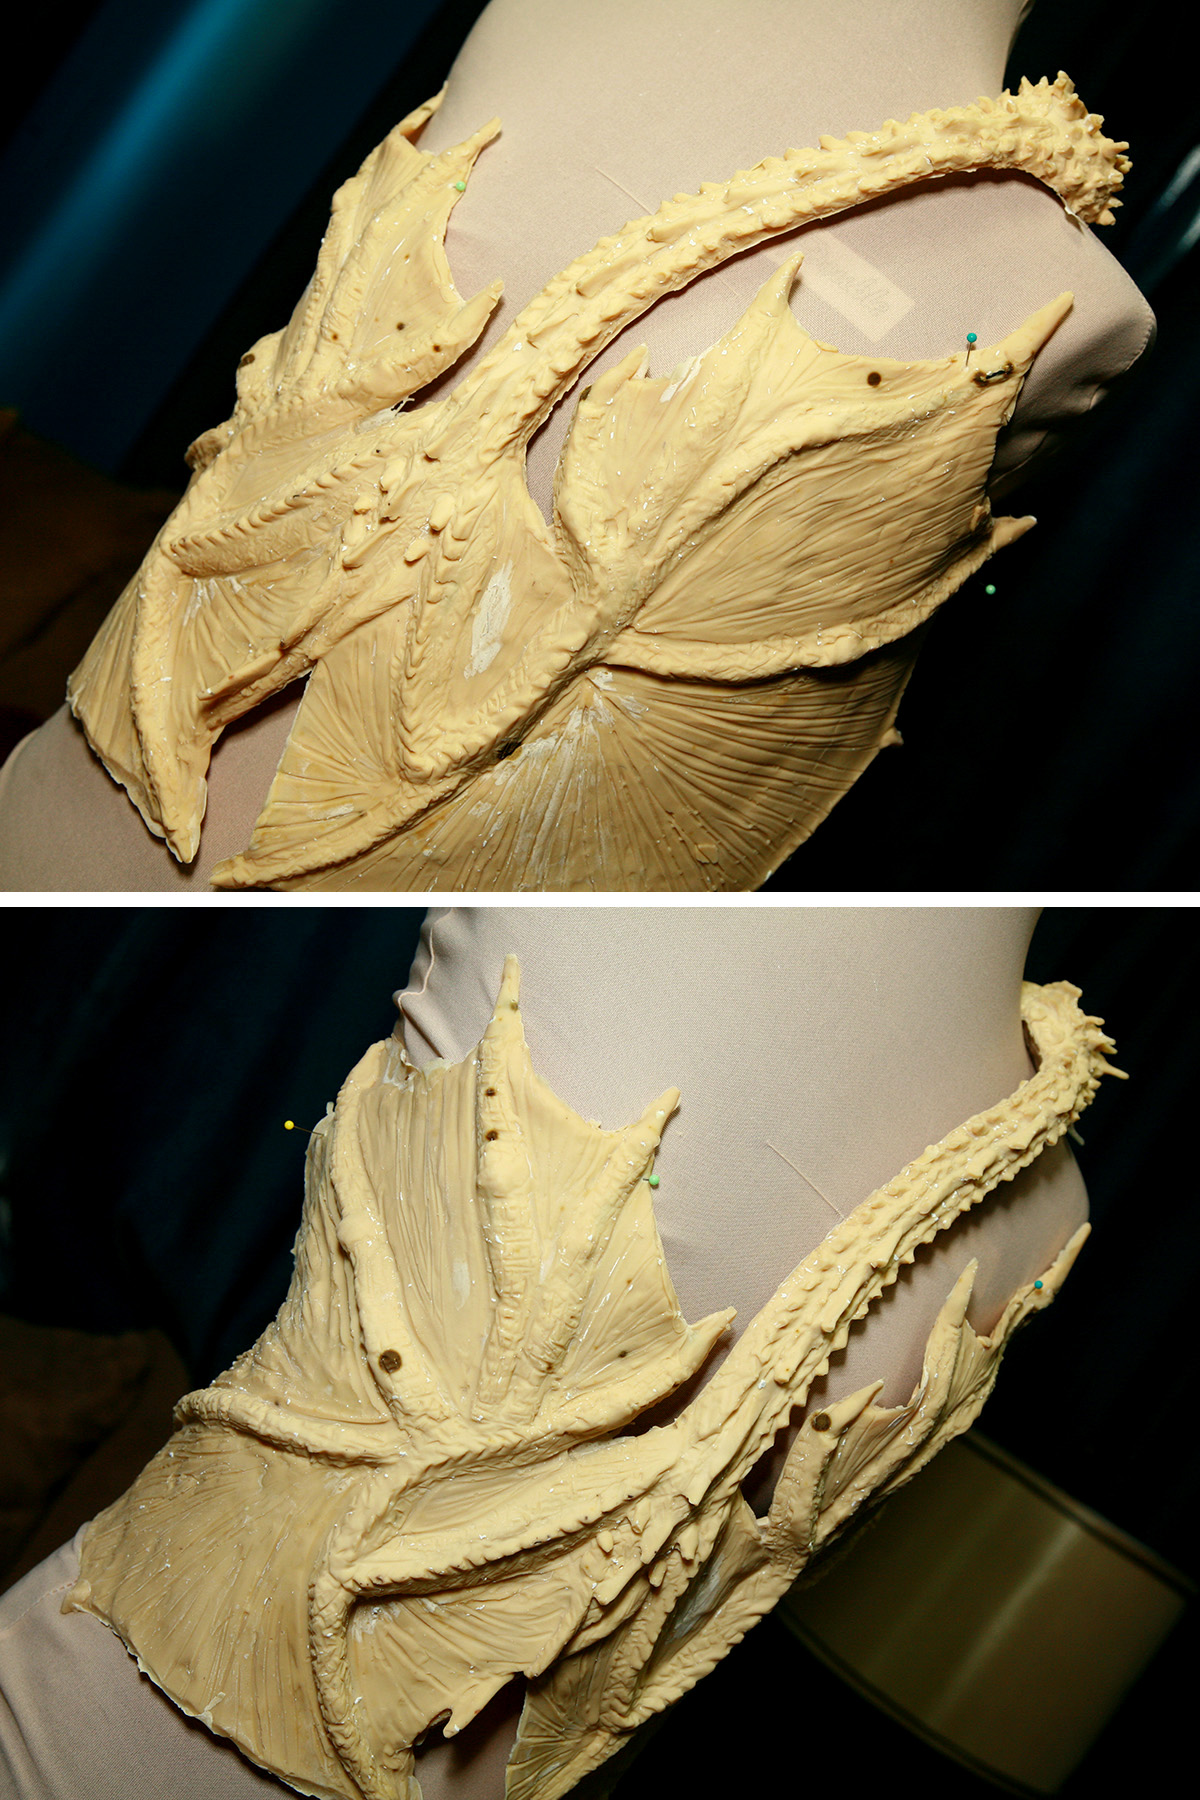 A 2 part compilation image, showing 2 different views of the freshly unmolded - and beige - latex dragon top, set up on a dress form.